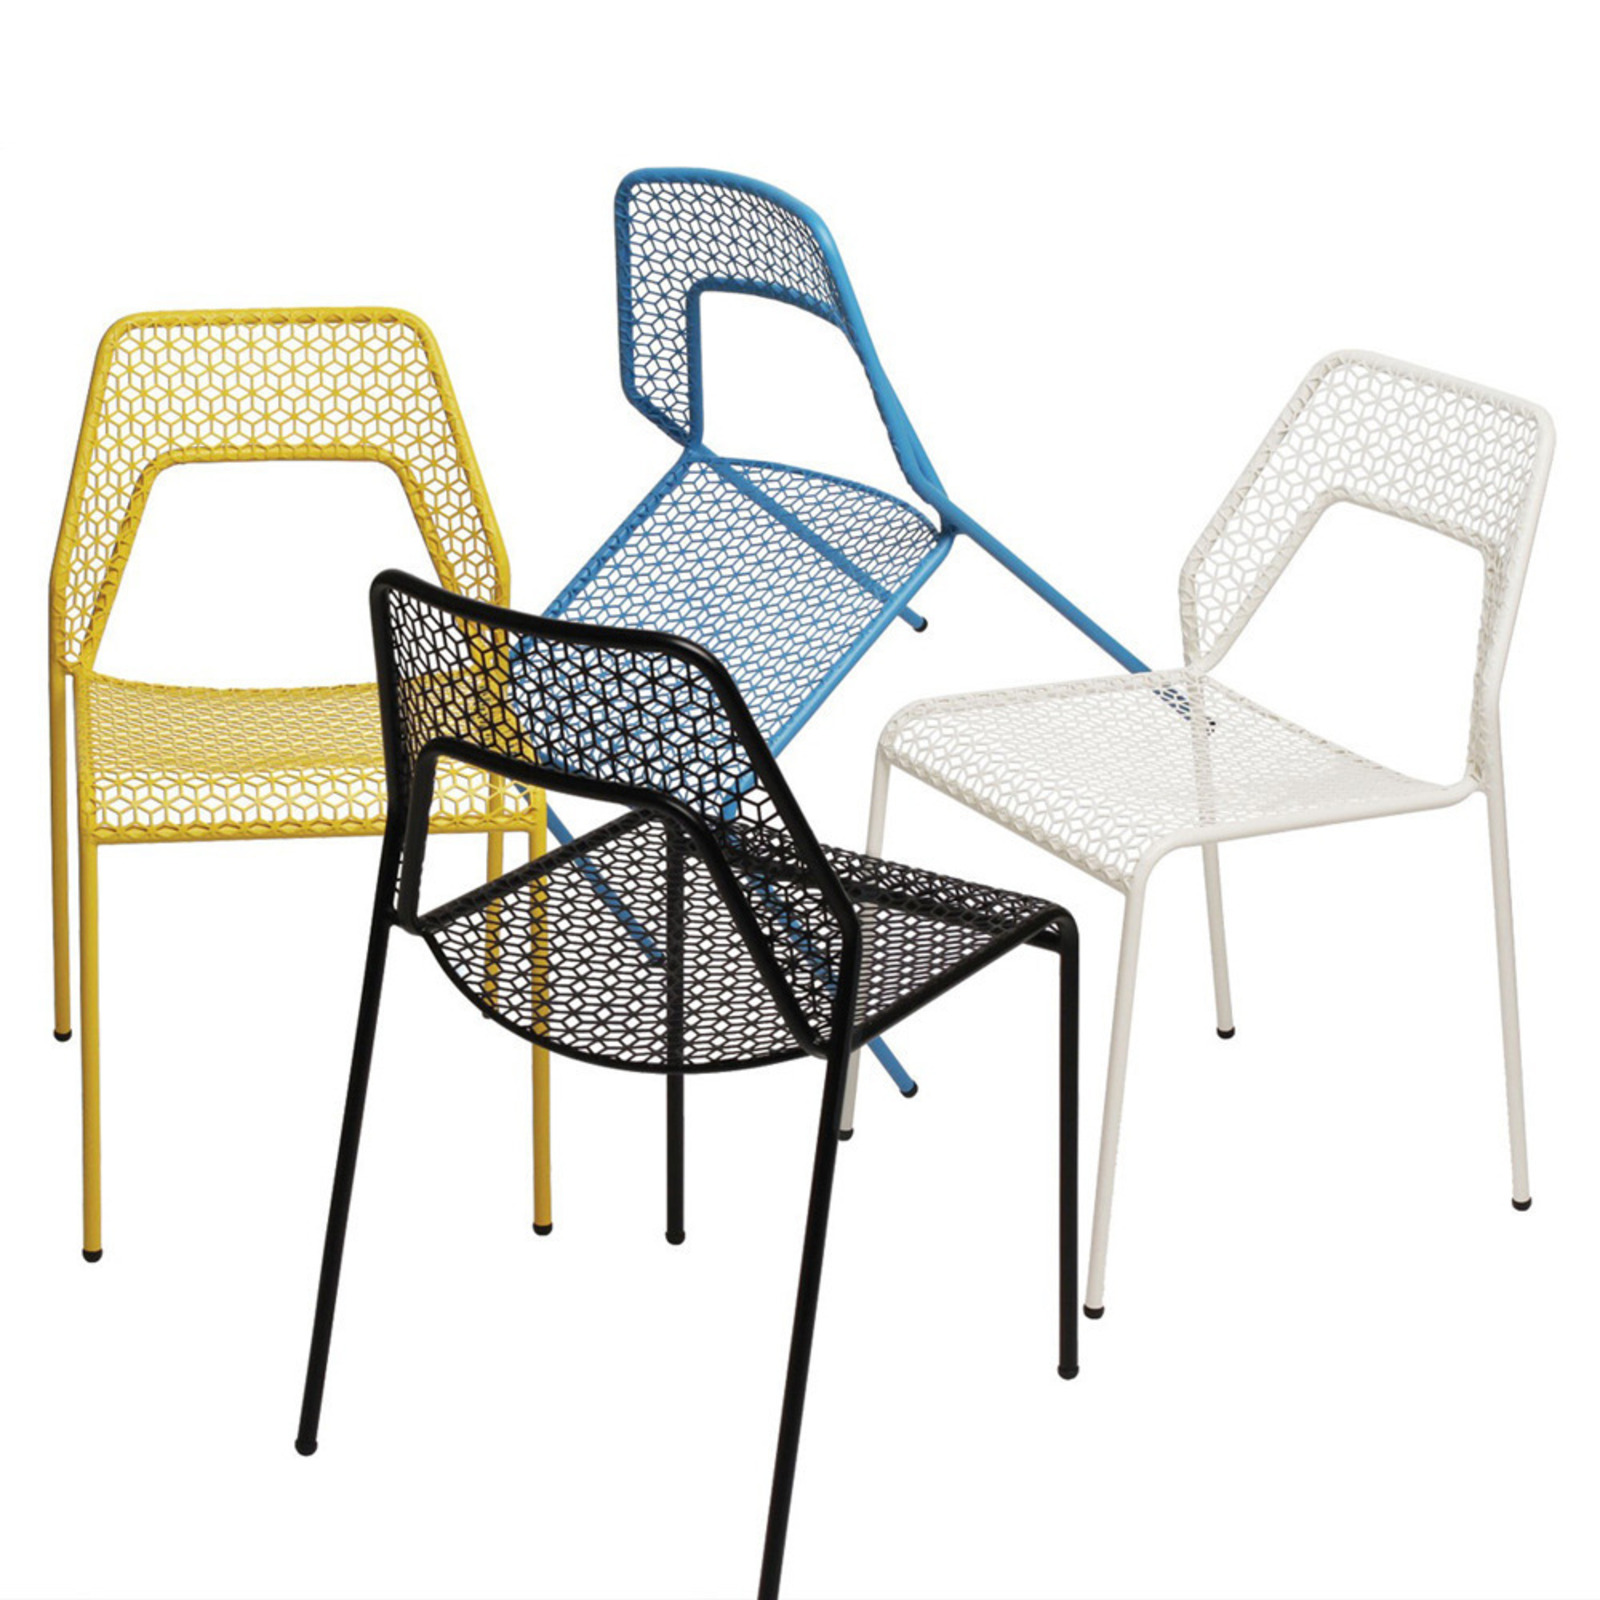 Mesh Patio Chairs Blu Dot 39s Hot Mesh Collection Cool Hunting